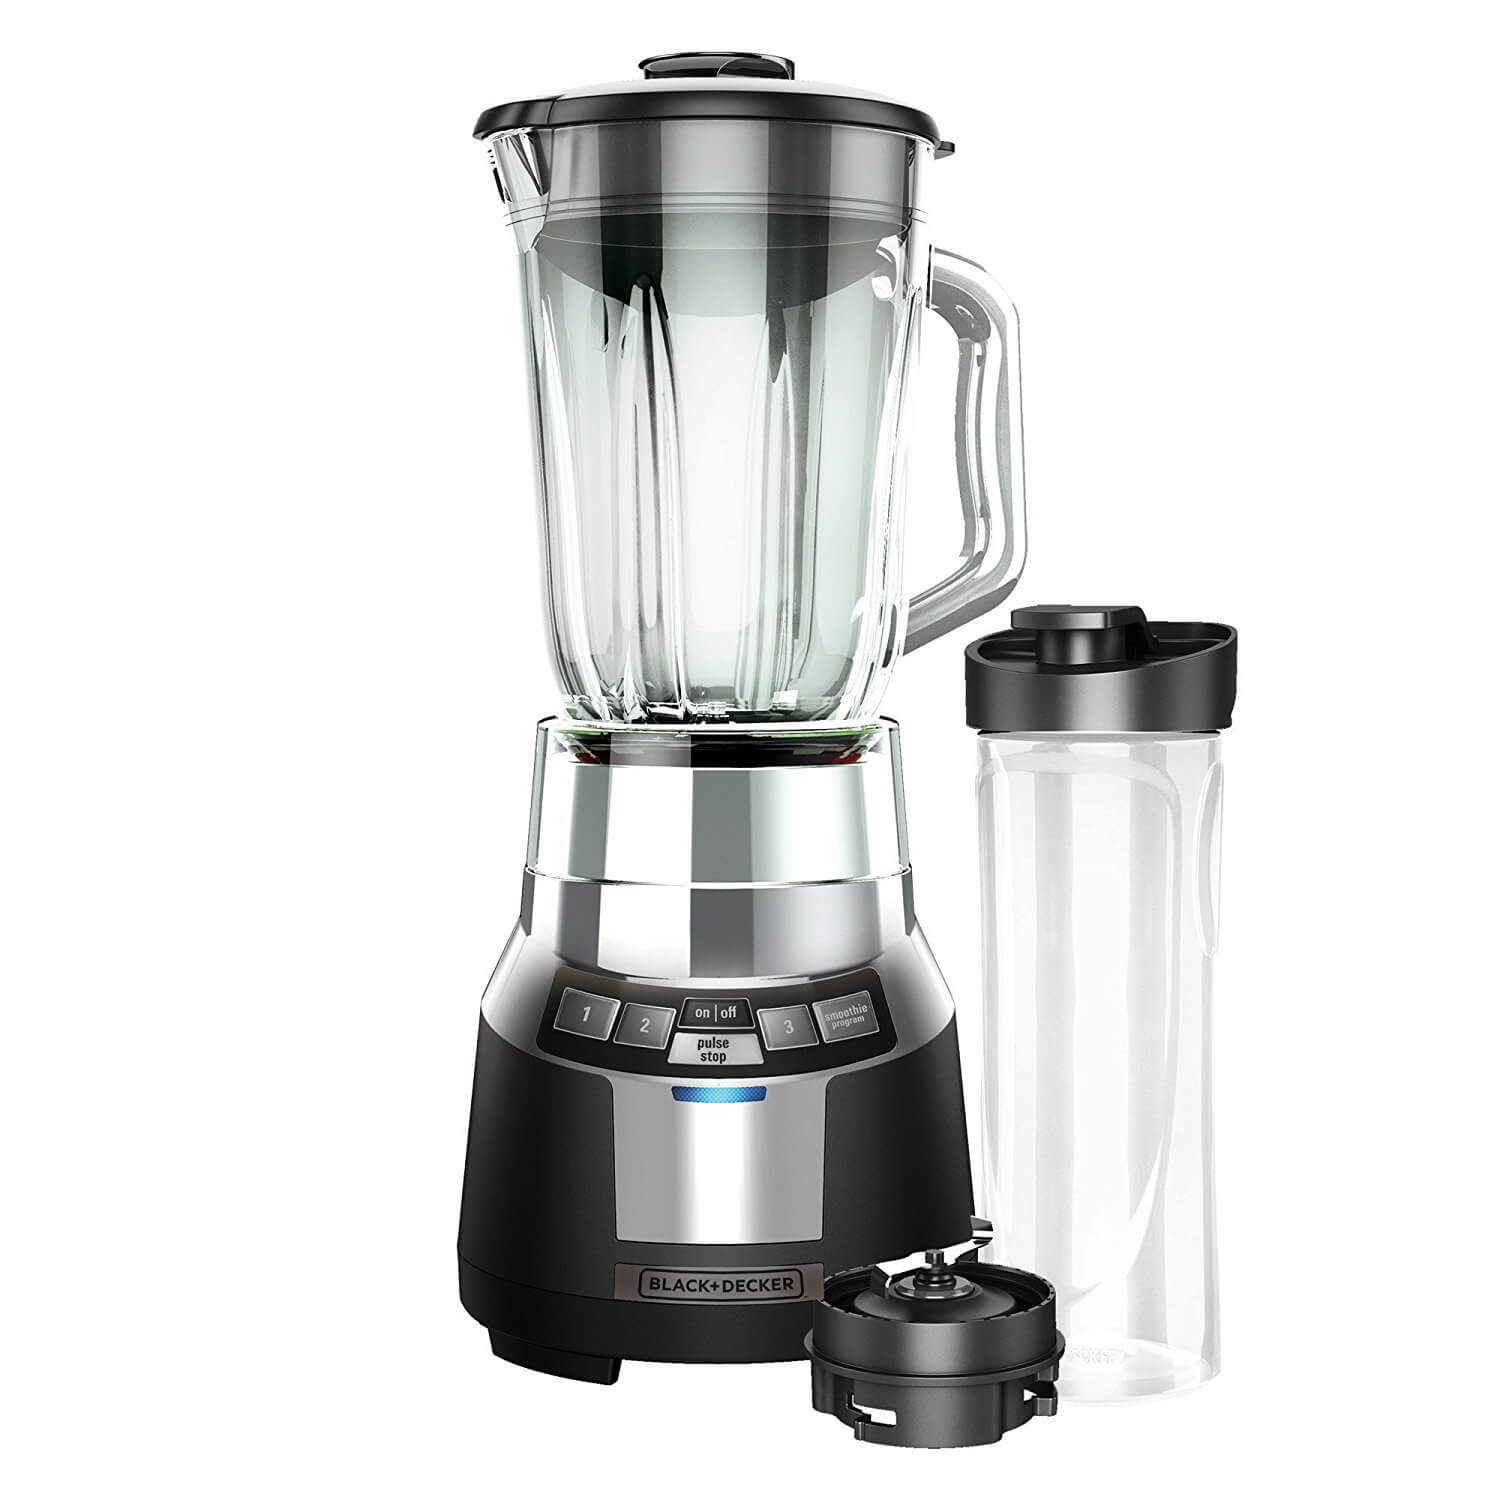 Black and Decker BL 1820SG-P FusionBlade Digital Blender with the Fastest Smoothie System